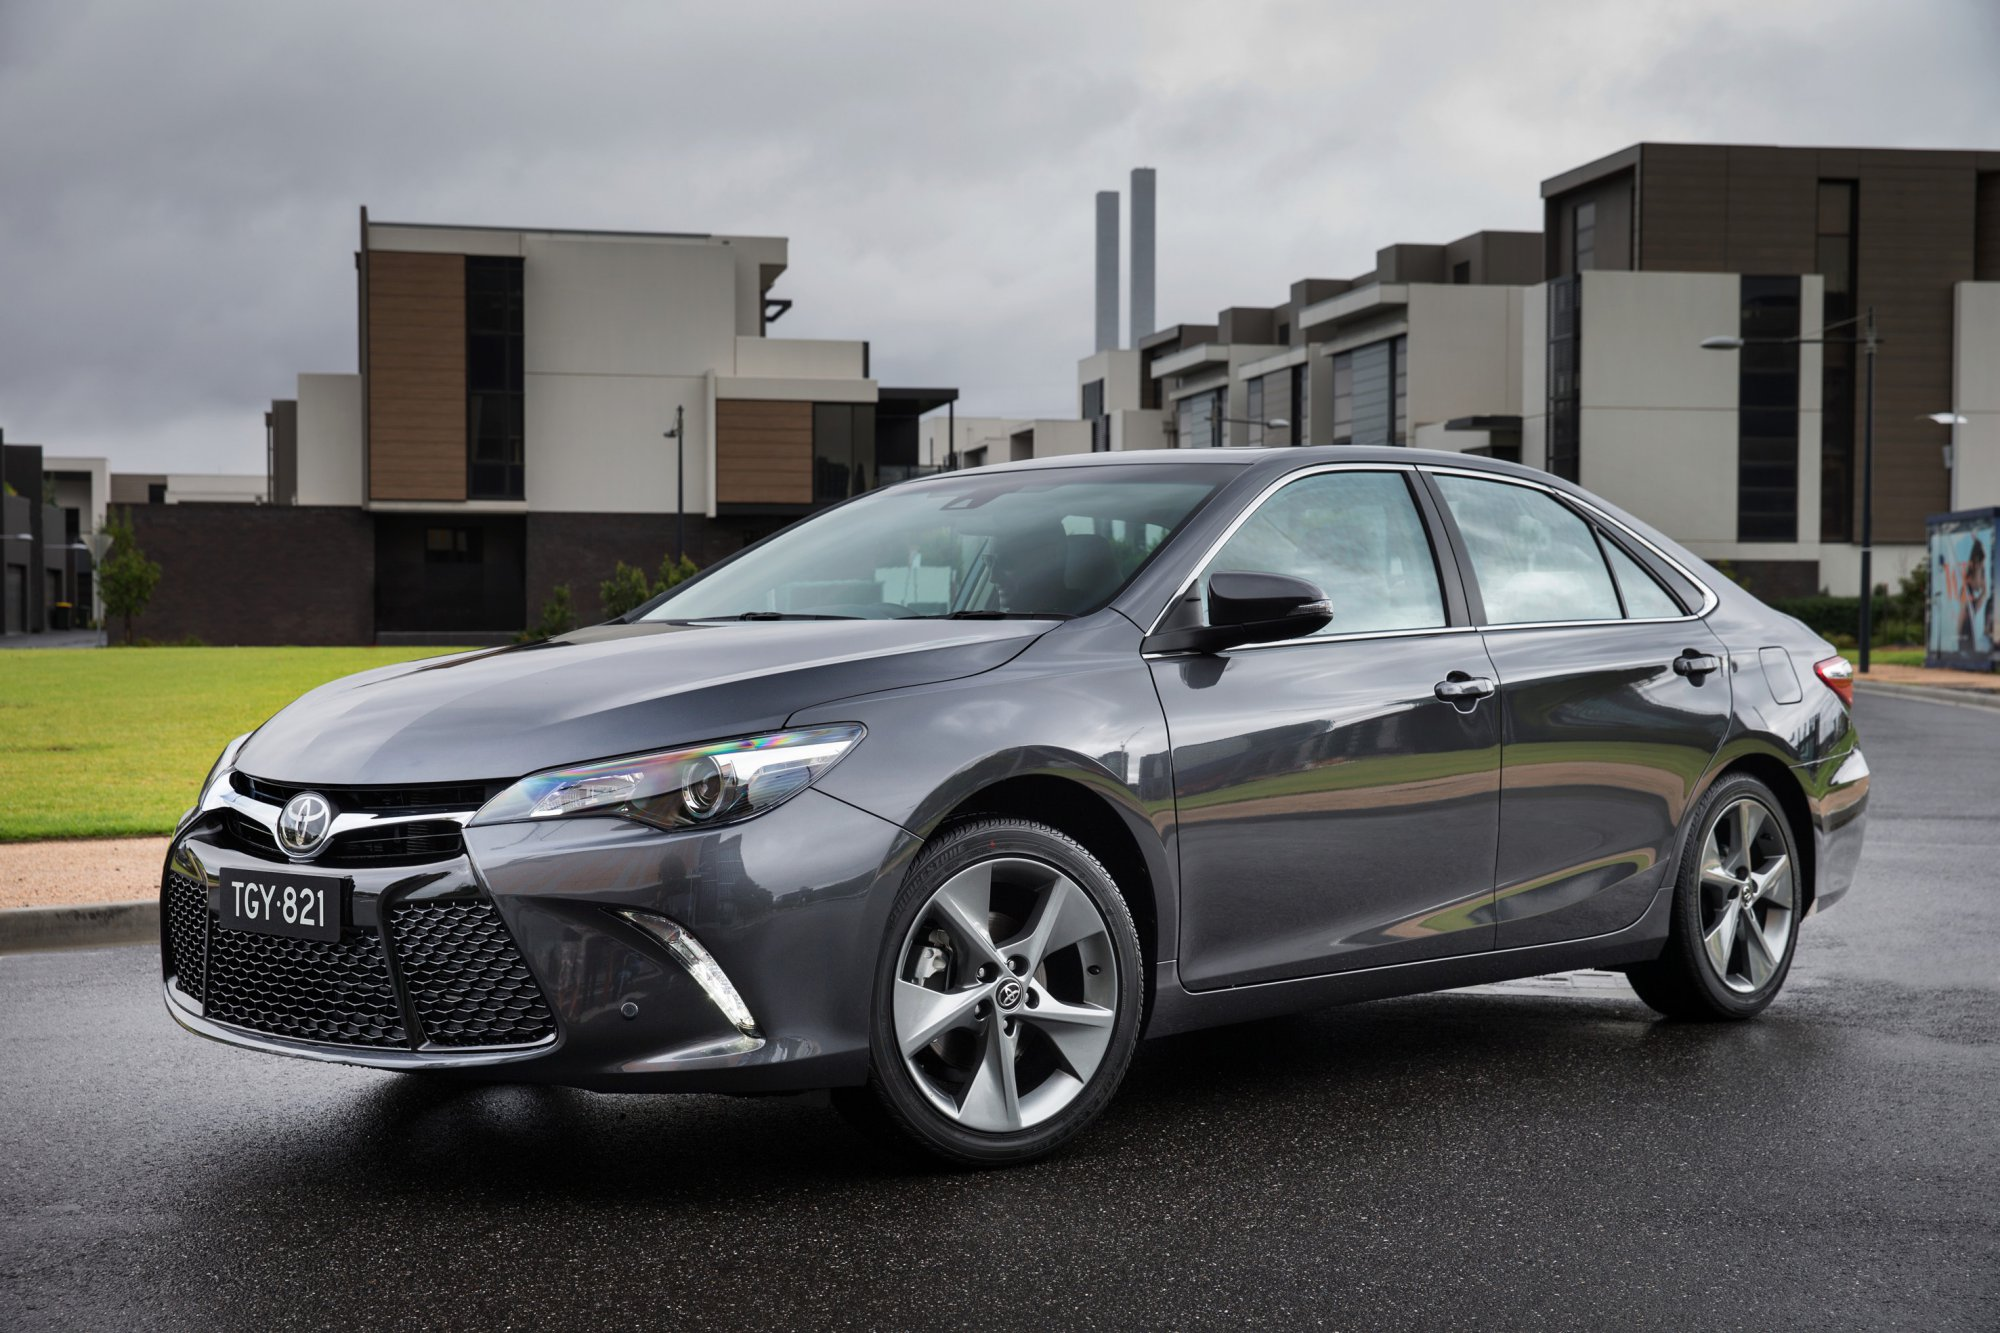 Australia Camry 2018 >> Review - 2016 Toyota Camry - Review